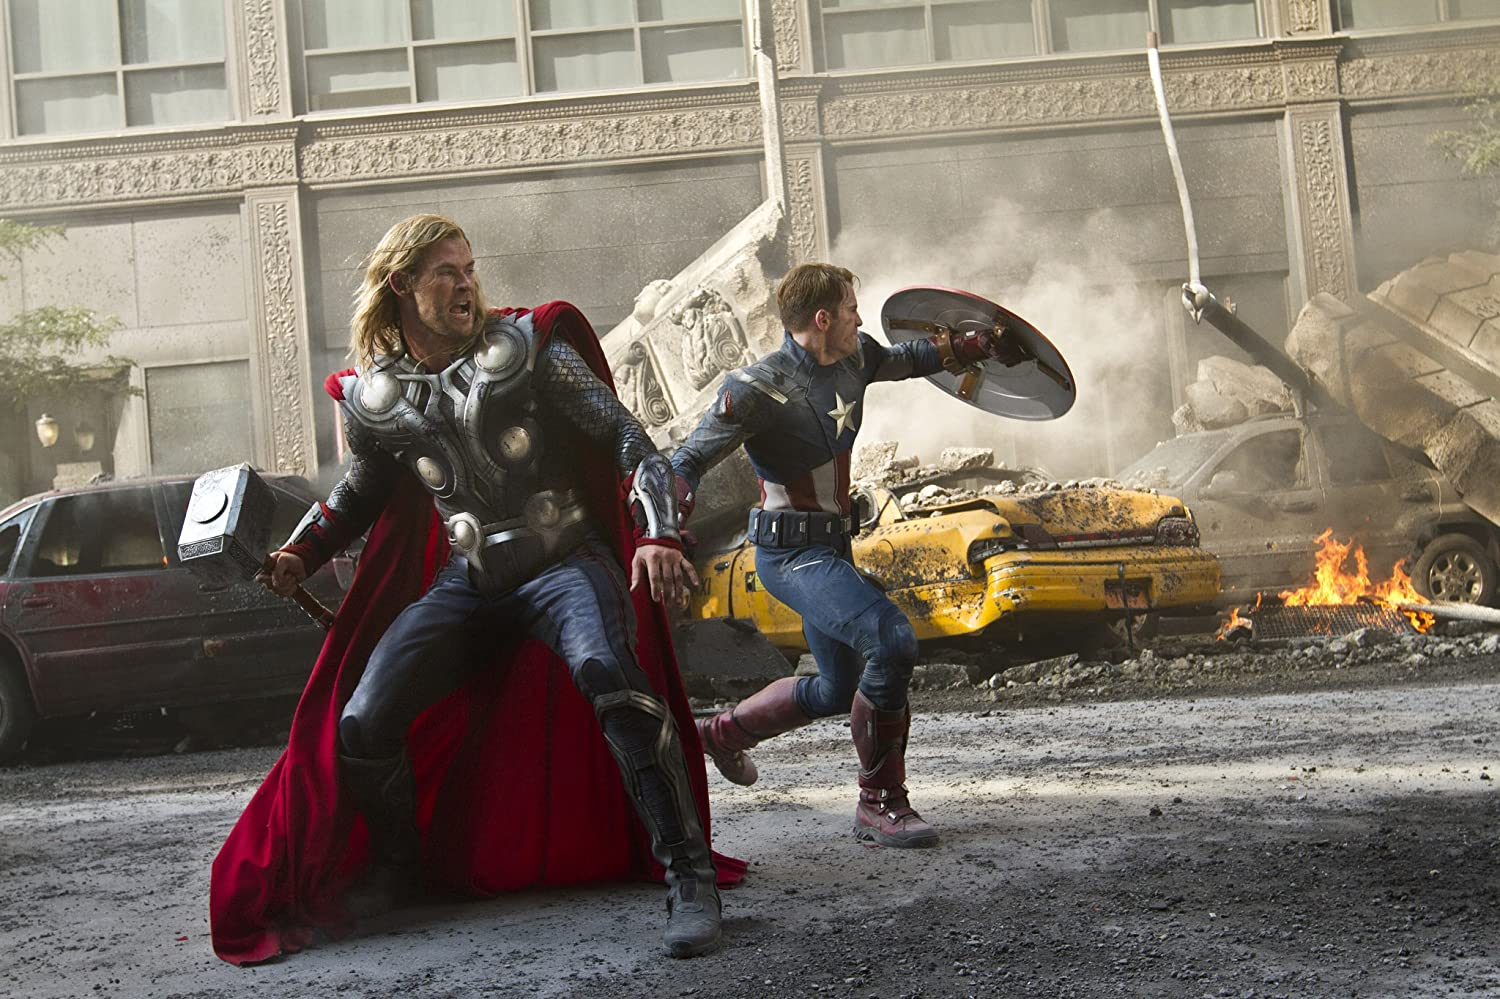 Chris Evans and Chris Hemsworth in The Avengers (2012)